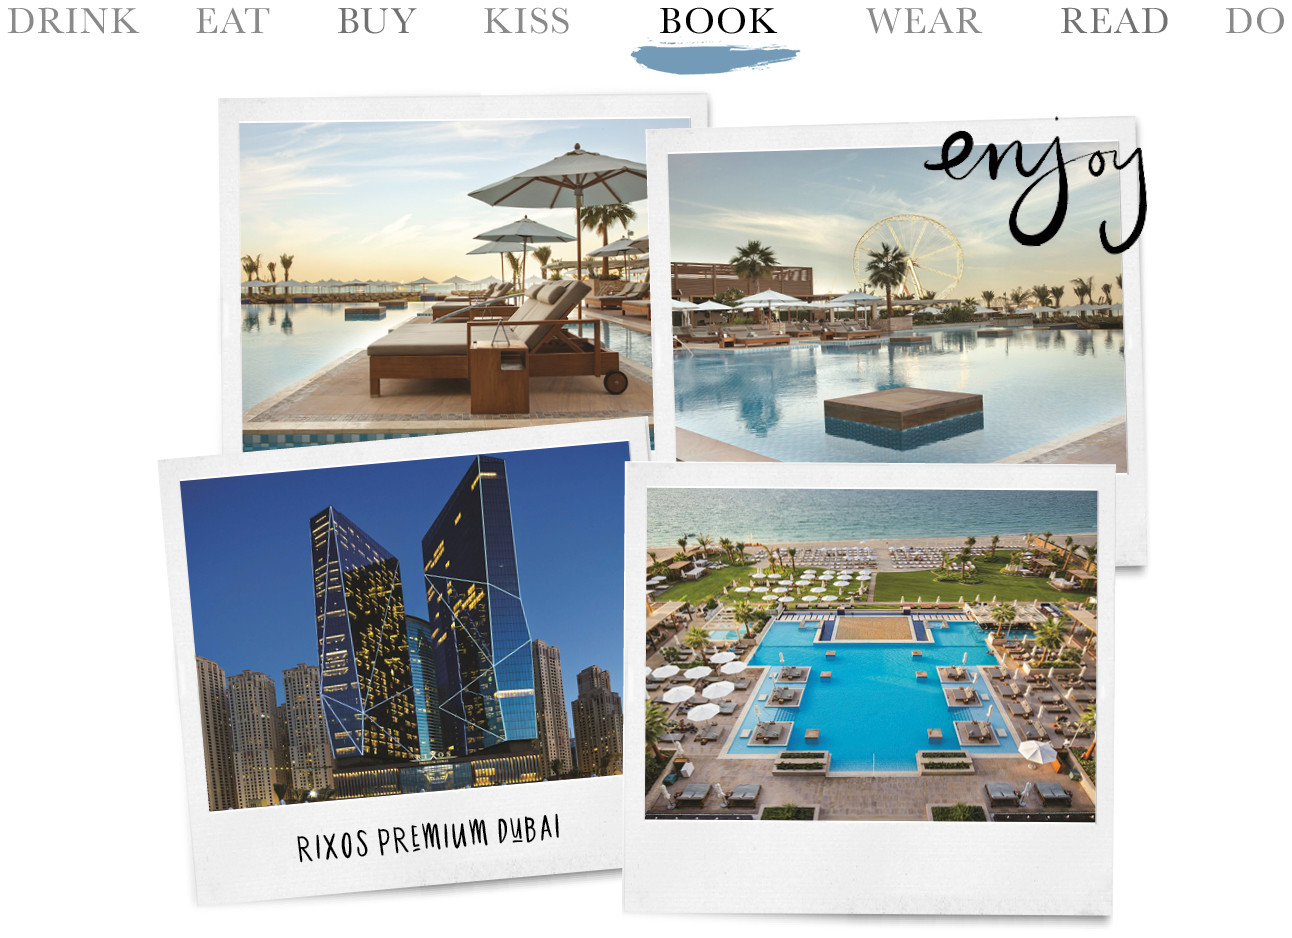 Today we Book - Rixos Premium Dubai